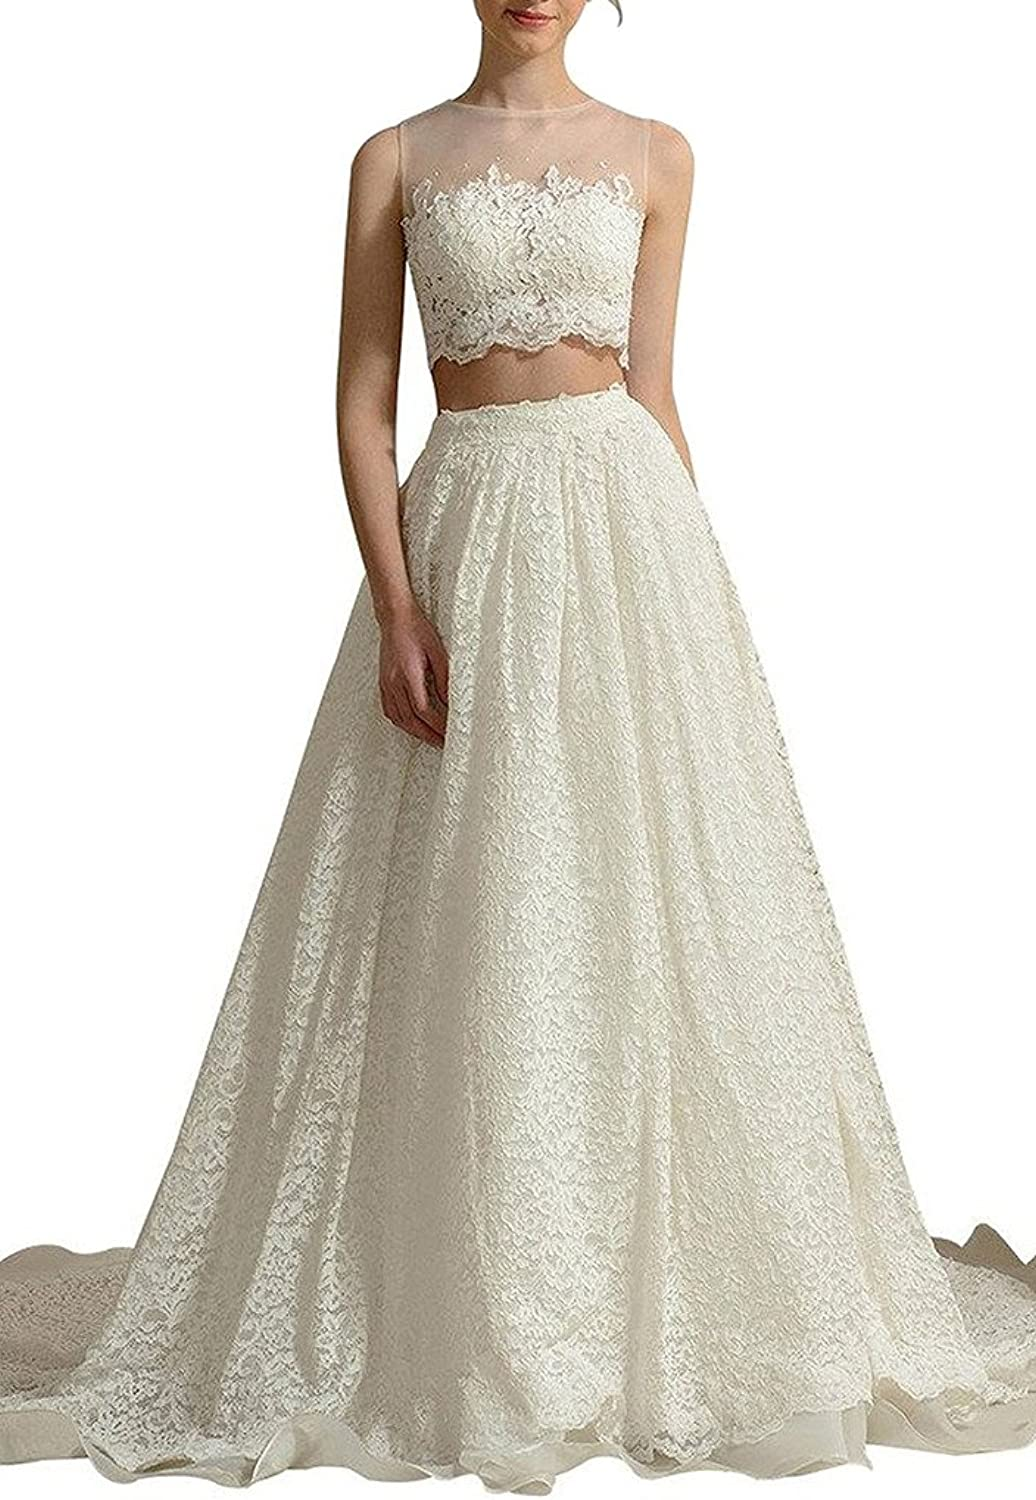 Dearta Women's ALine Two Pieces Long Scoop Sheer Wedding Dresses with Appliques